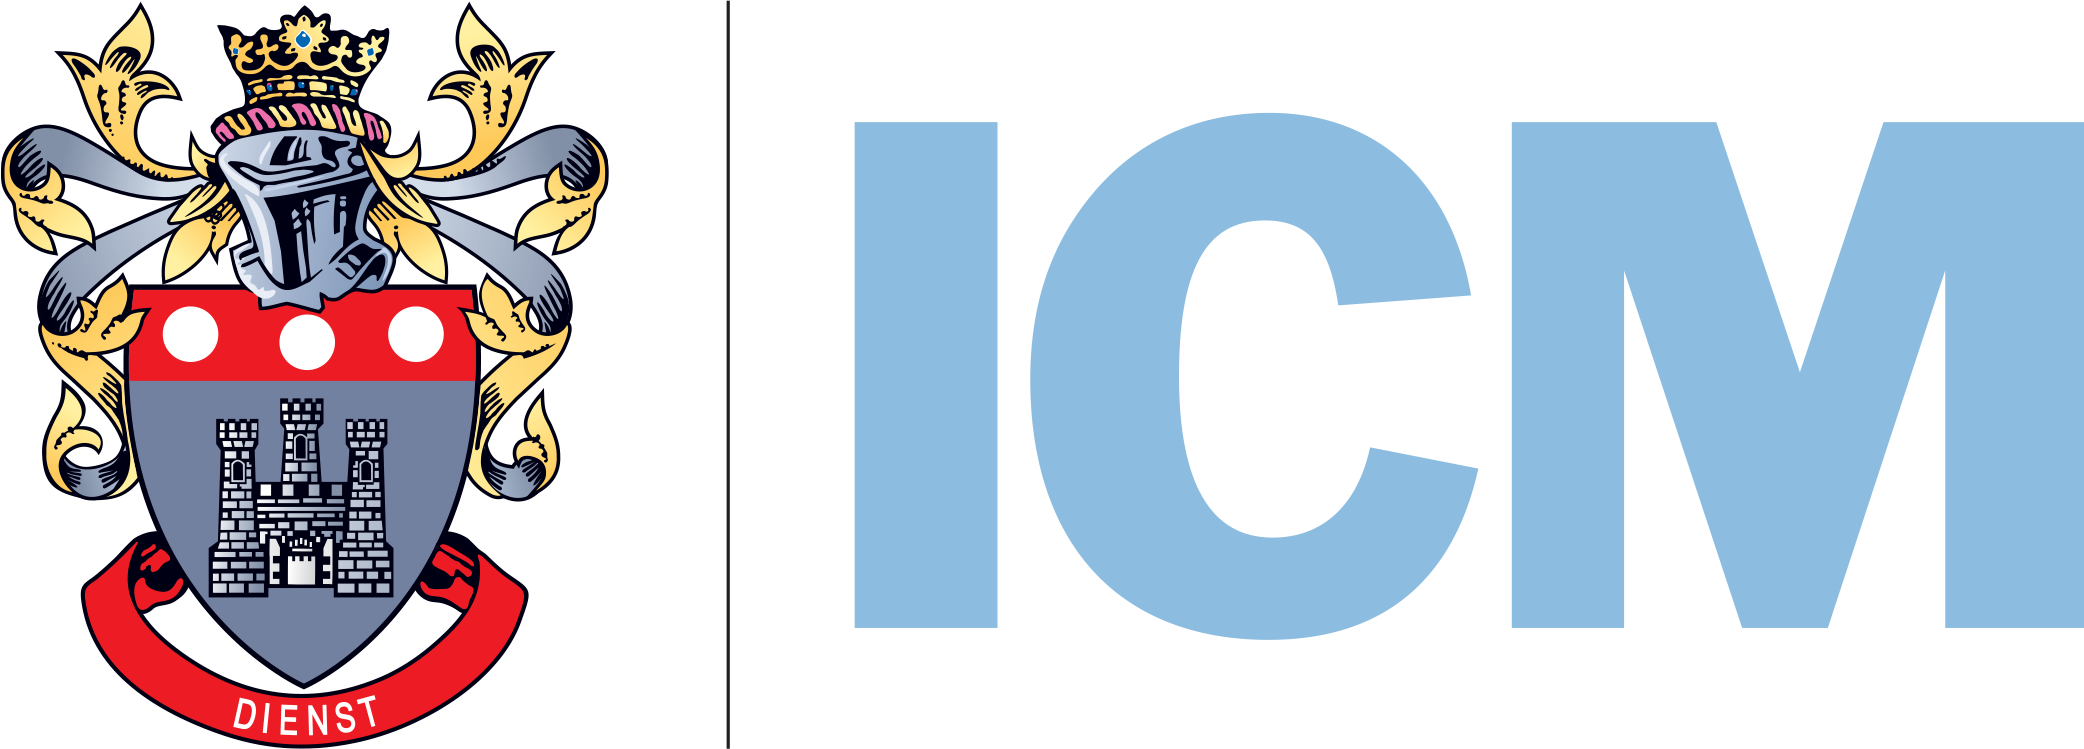 Icm logo clipart graphic black and white library Icm Student Portal - Institute Of Commercial Management Logo ... graphic black and white library